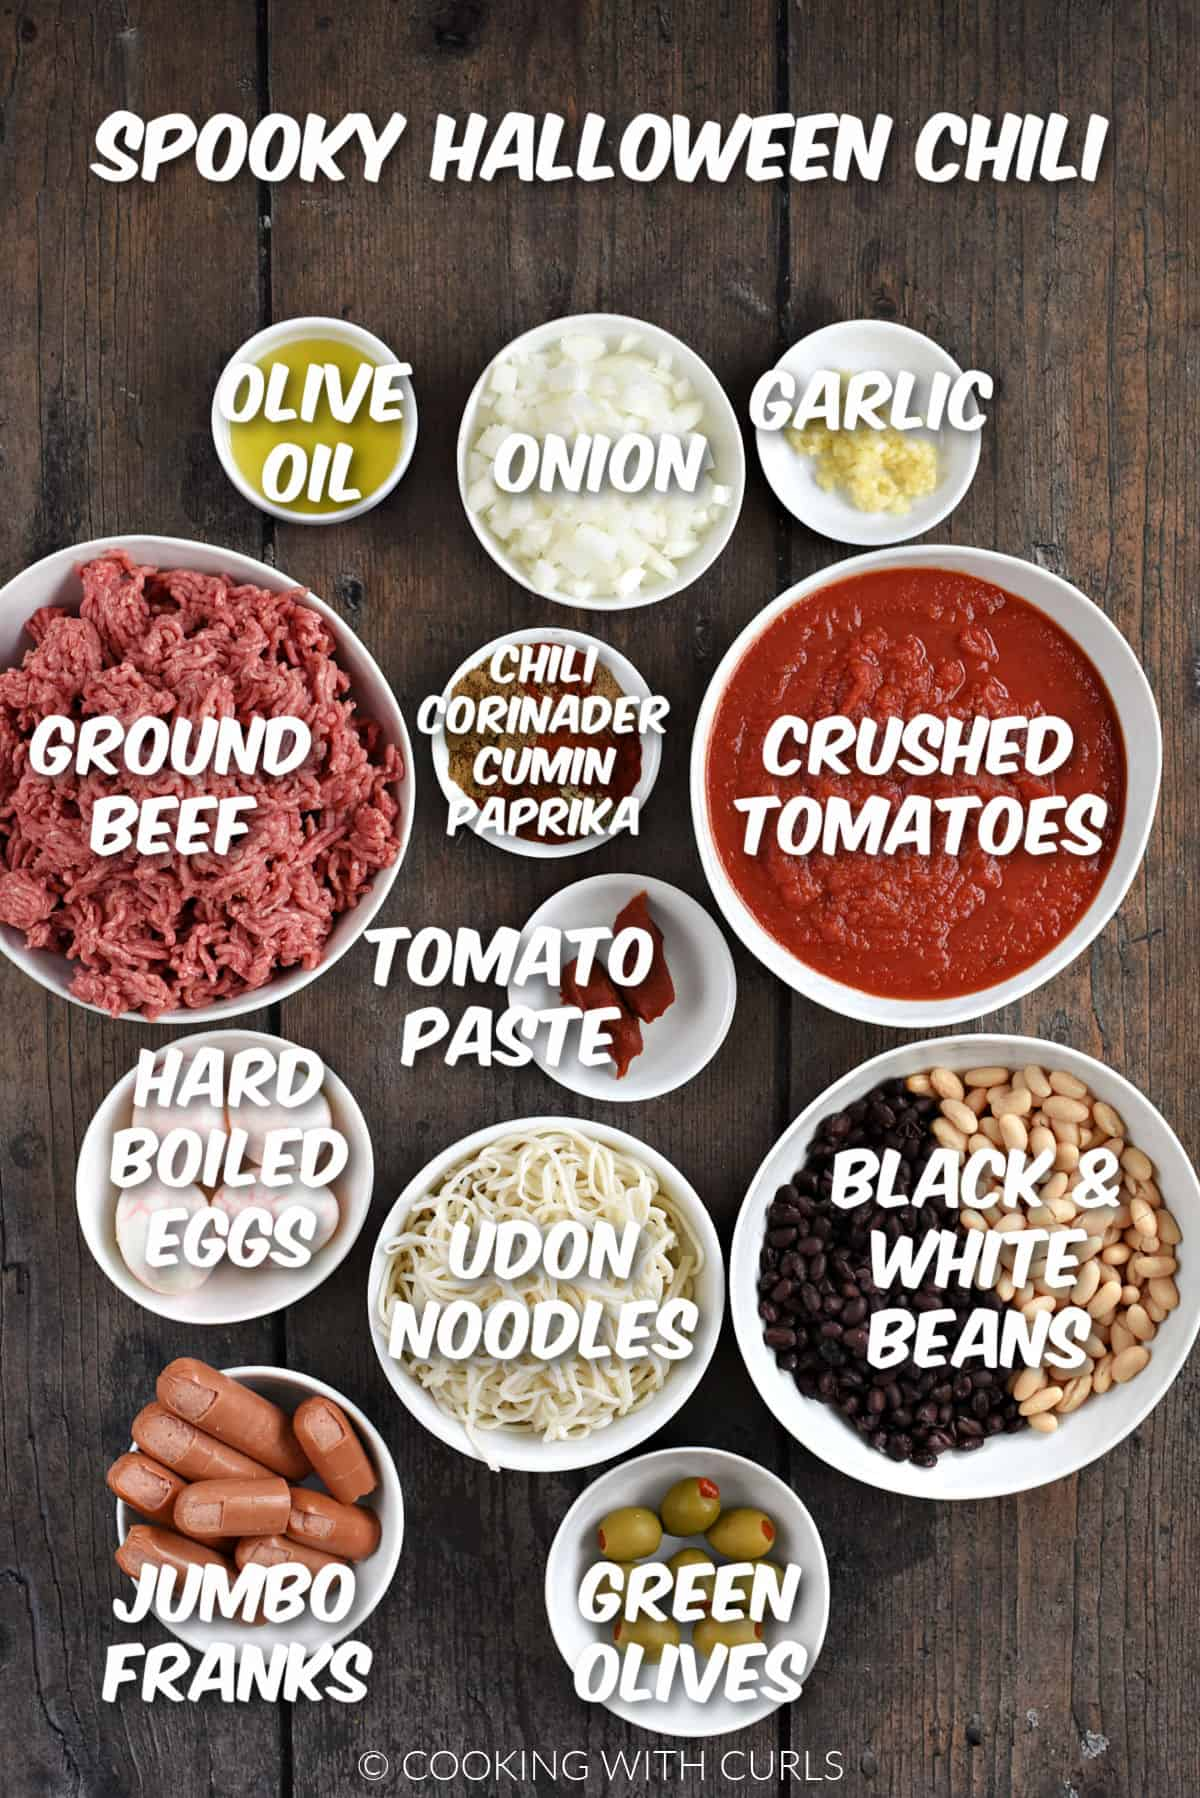 The ingredients to make Spooky Halloween Chili in white bowls.